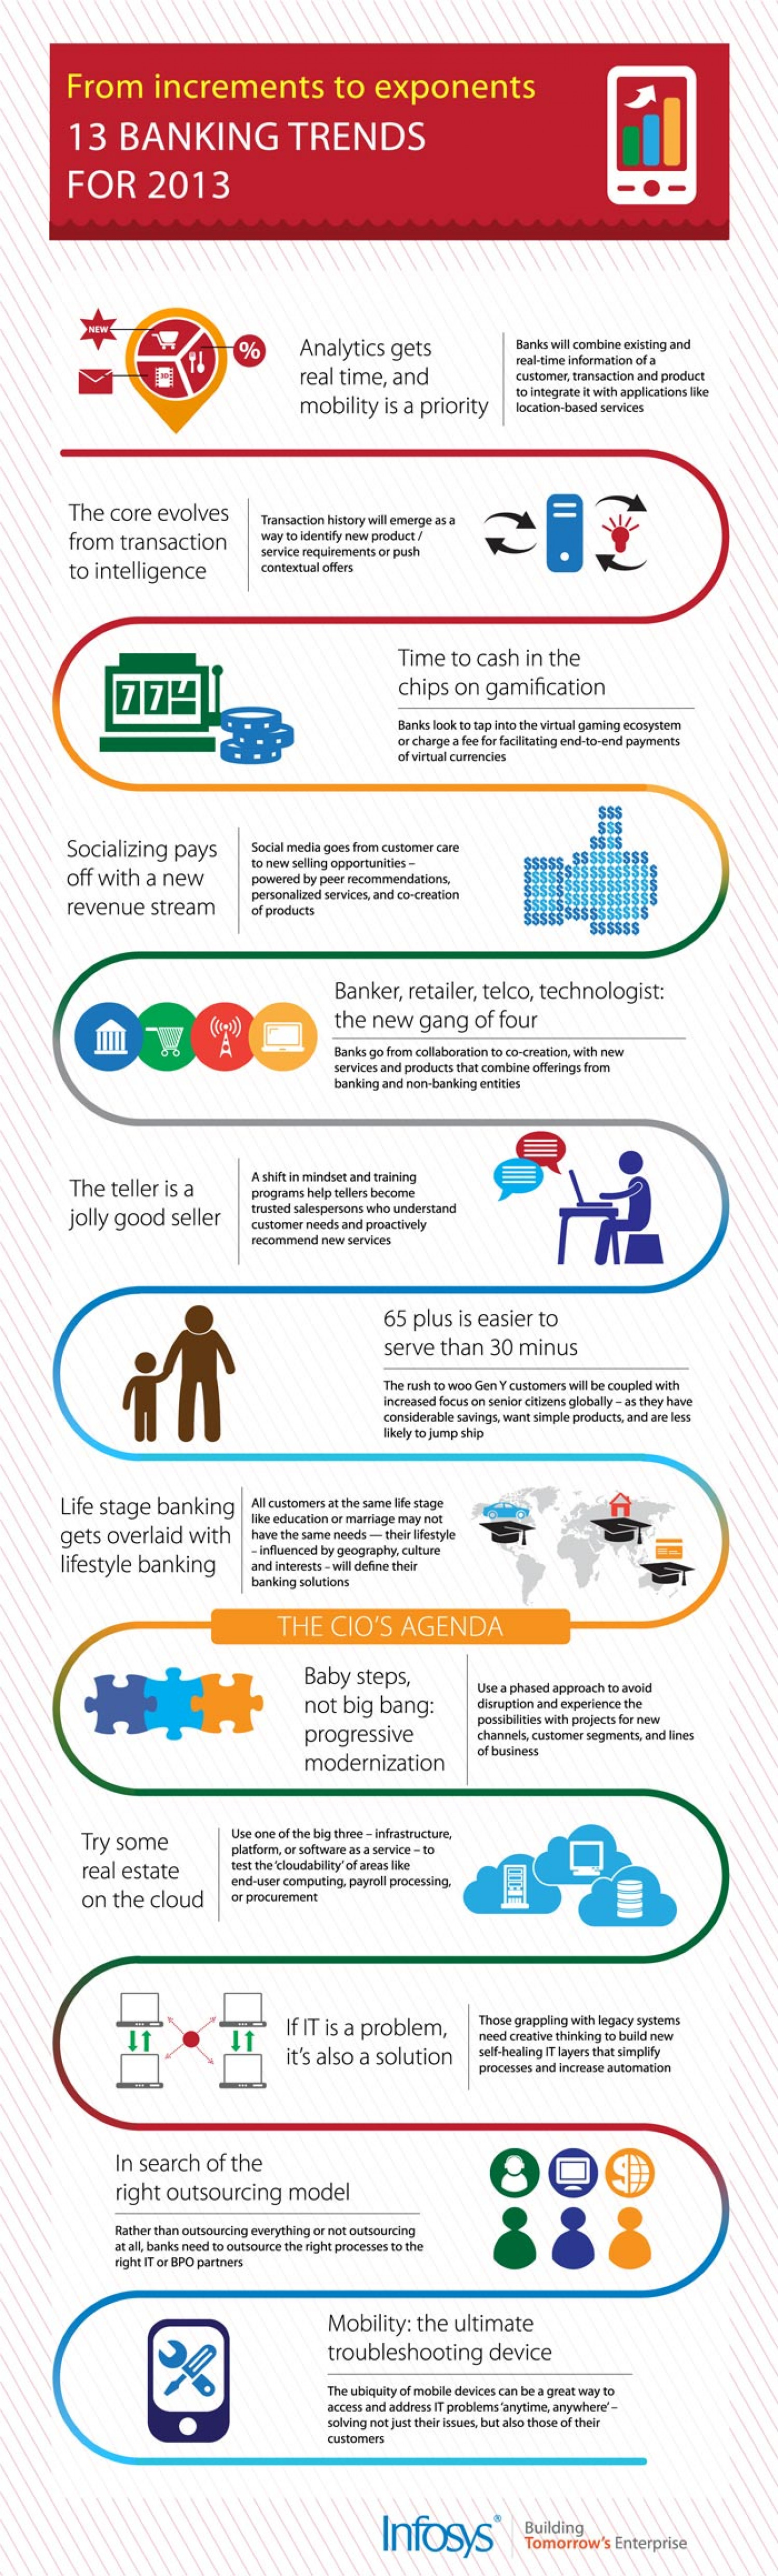 13 Banking Trends For 2013 Infographic